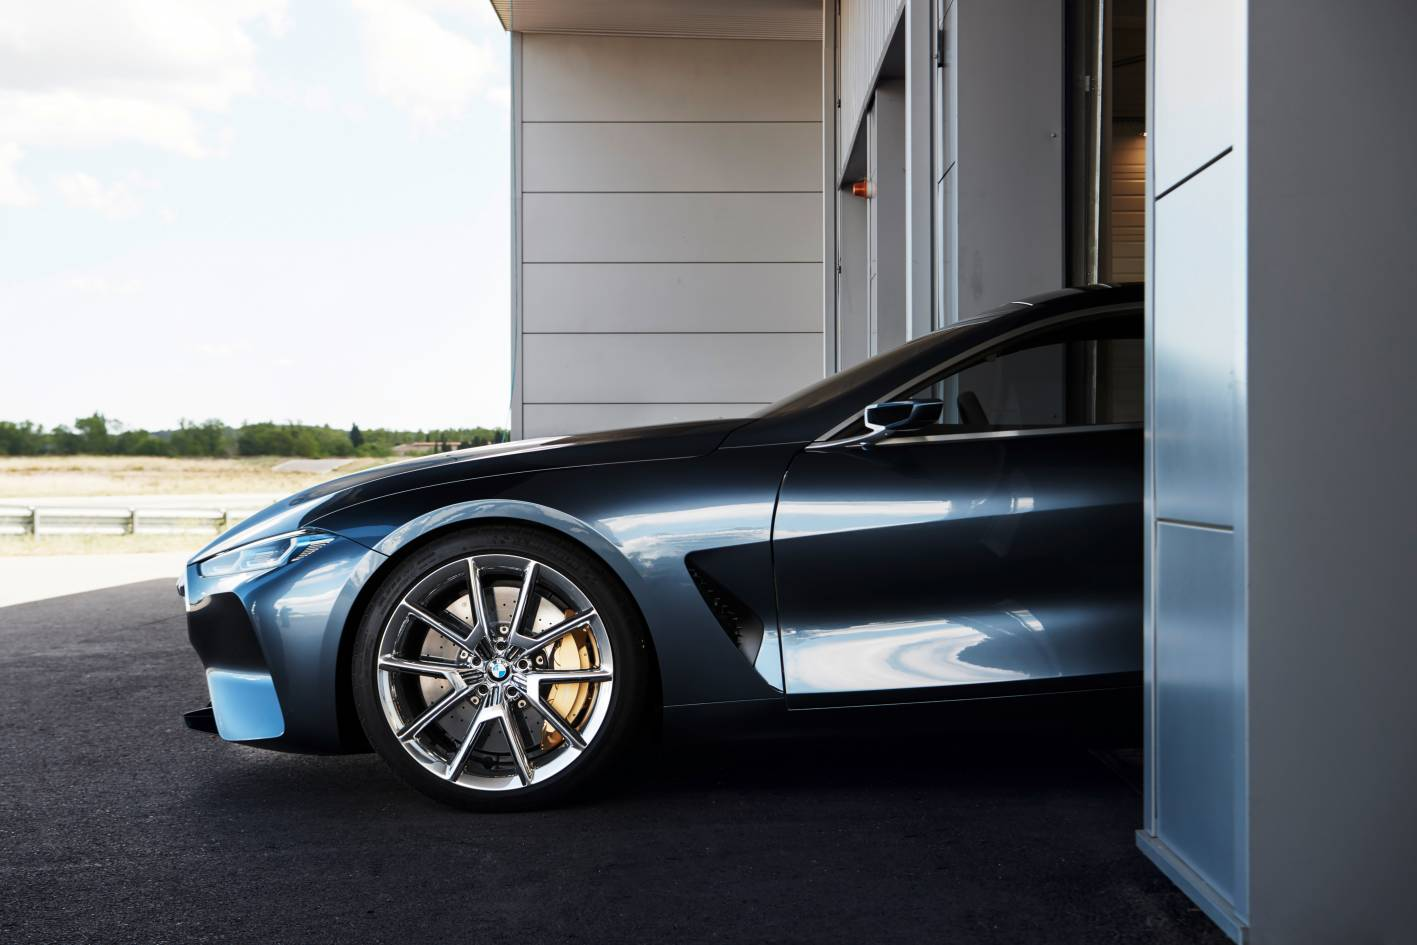 bmw 8 series concept breaks cover ahead of 2018 arrival. Black Bedroom Furniture Sets. Home Design Ideas